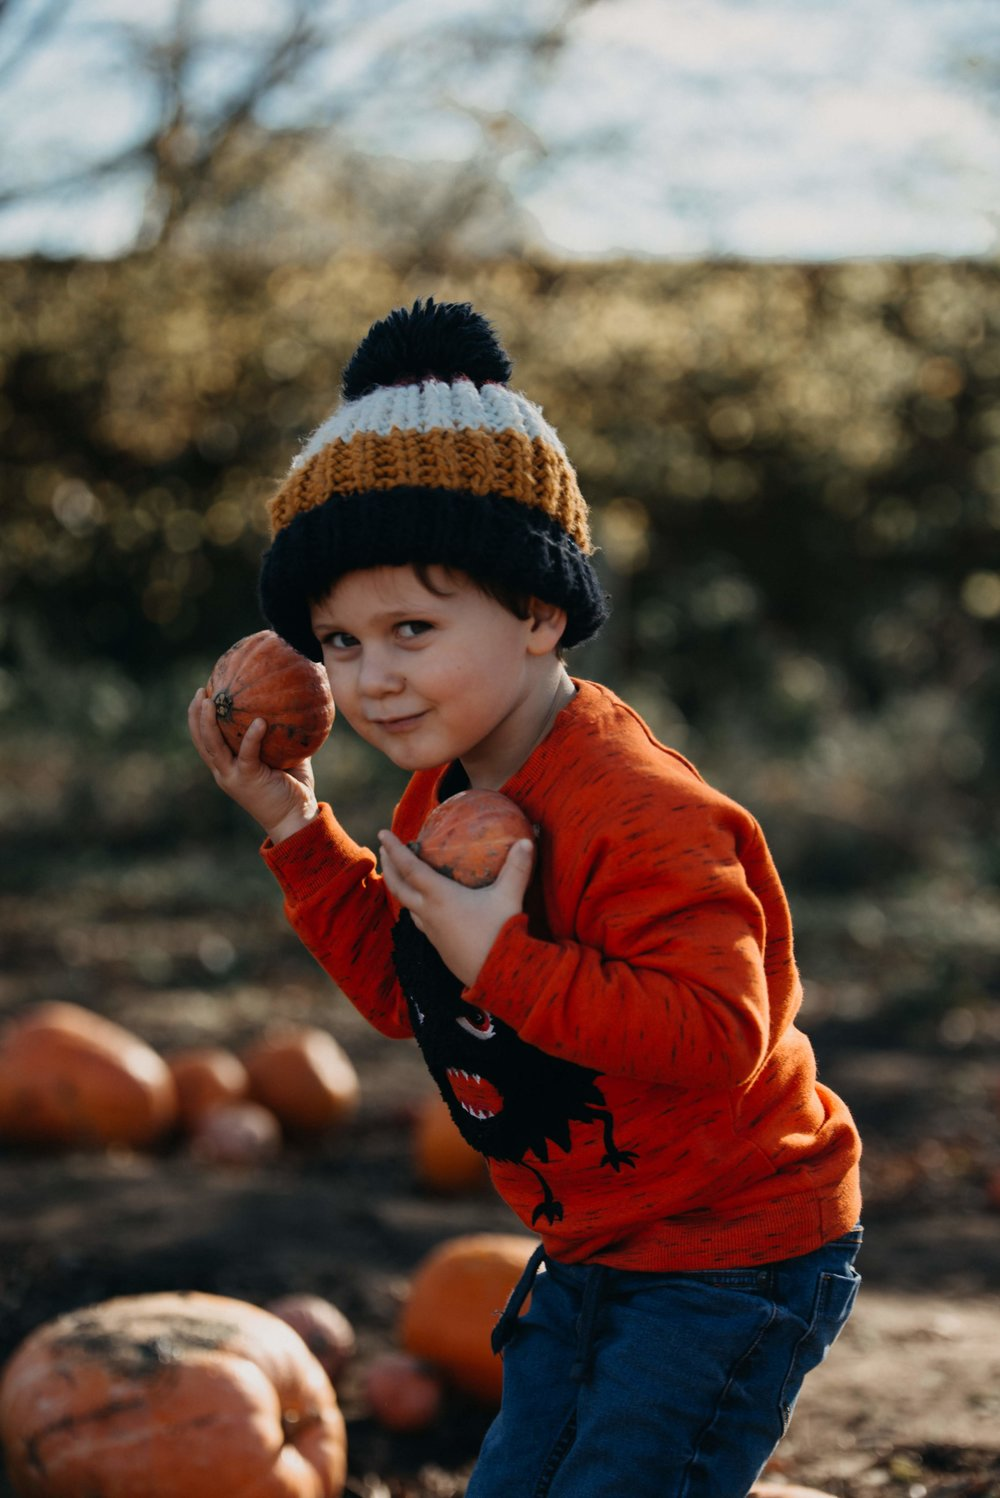 Pumpkin picking with Jesse, October 2018 - 18.jpg